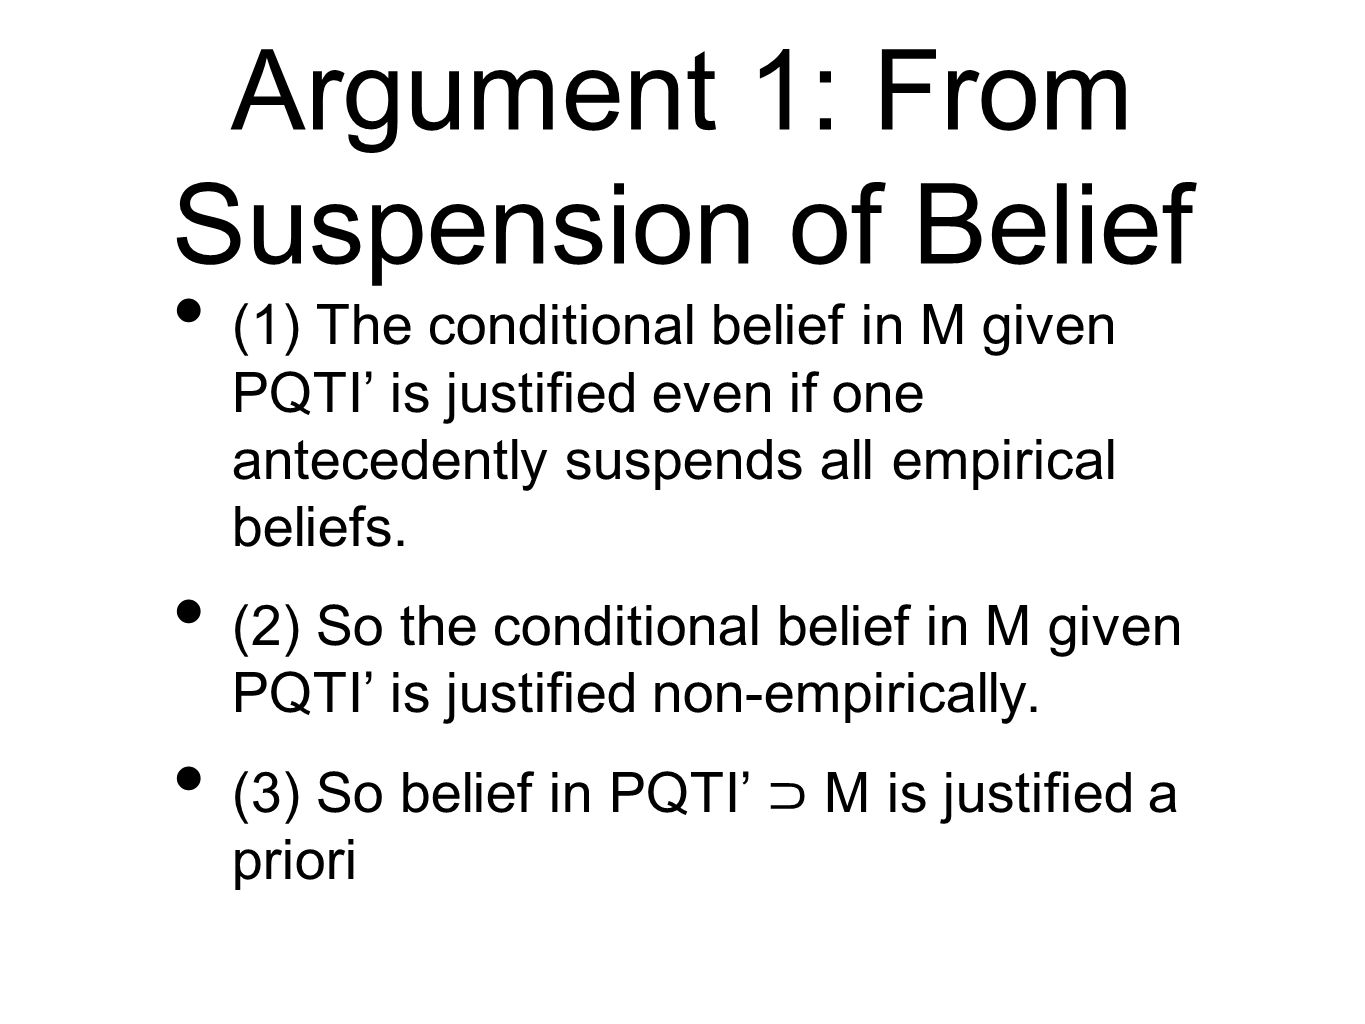 Argument 1: From Suspension of Belief (1) The conditional belief in M given PQTI is justified even if one antecedently suspends all empirical beliefs.